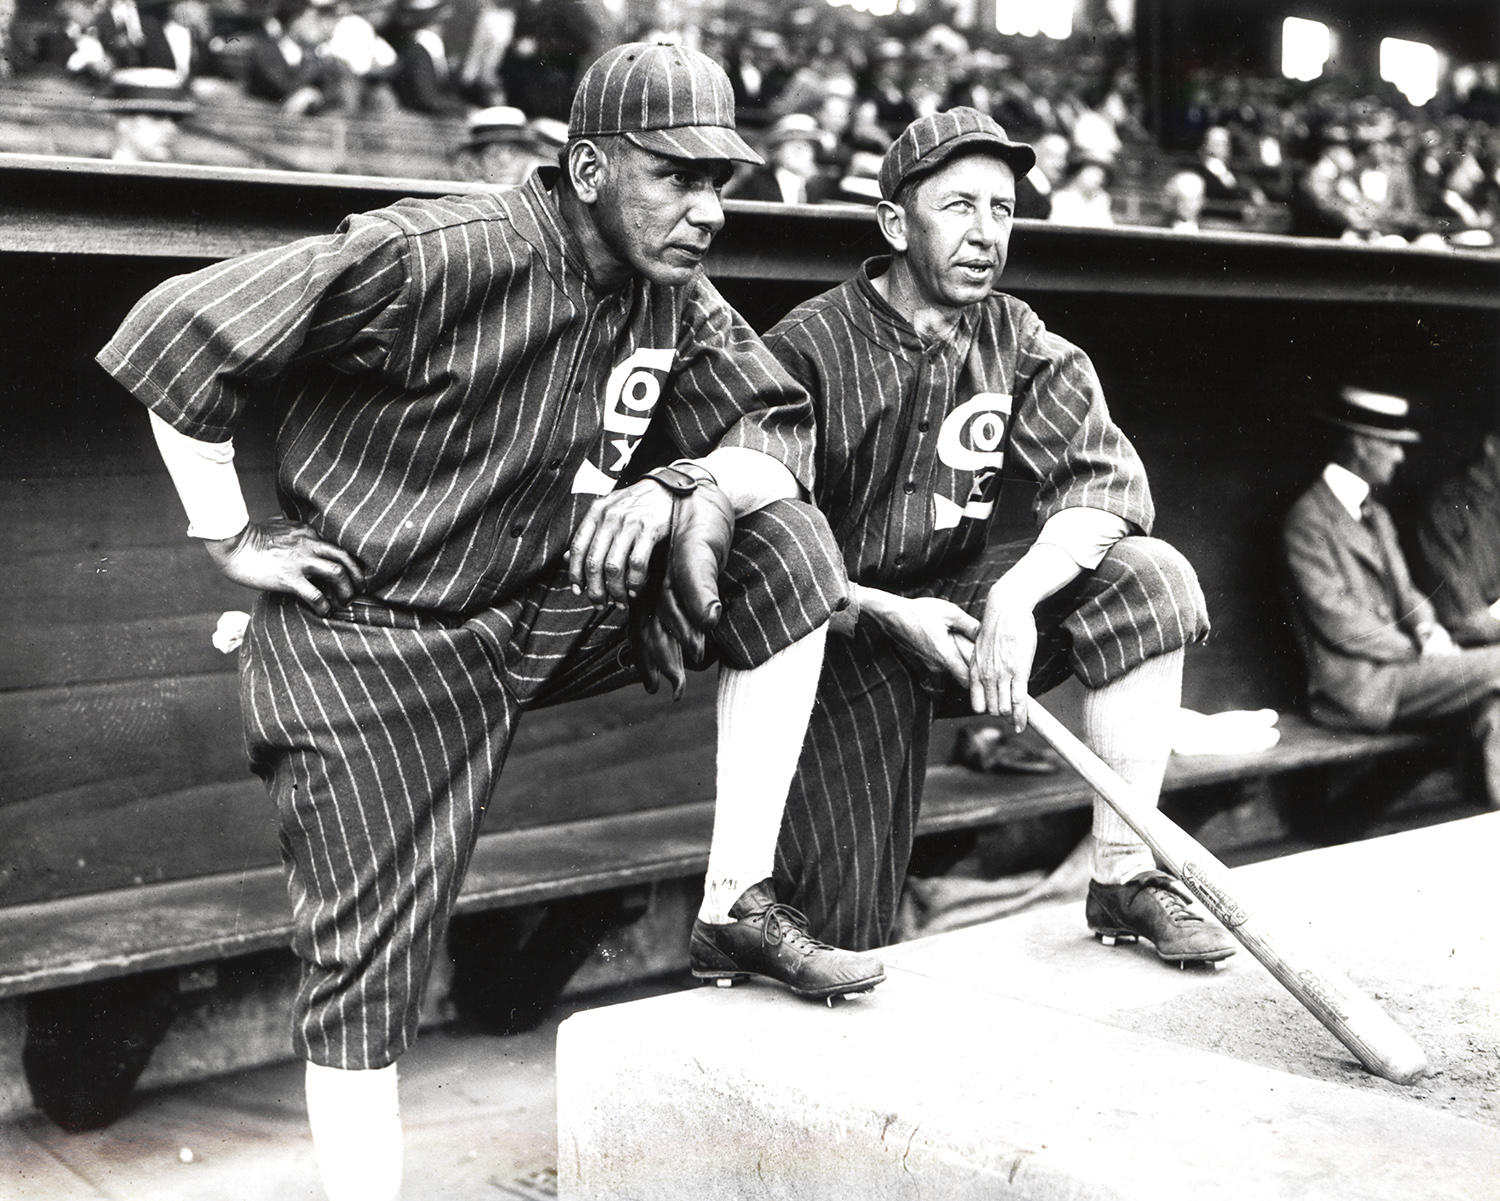 Eddie Collins (right) pictured above with fellow Hall of Famer Chief Bender, who played together on the Chicago White Sox in 1925. (National Baseball Hall of Fame and Museum)